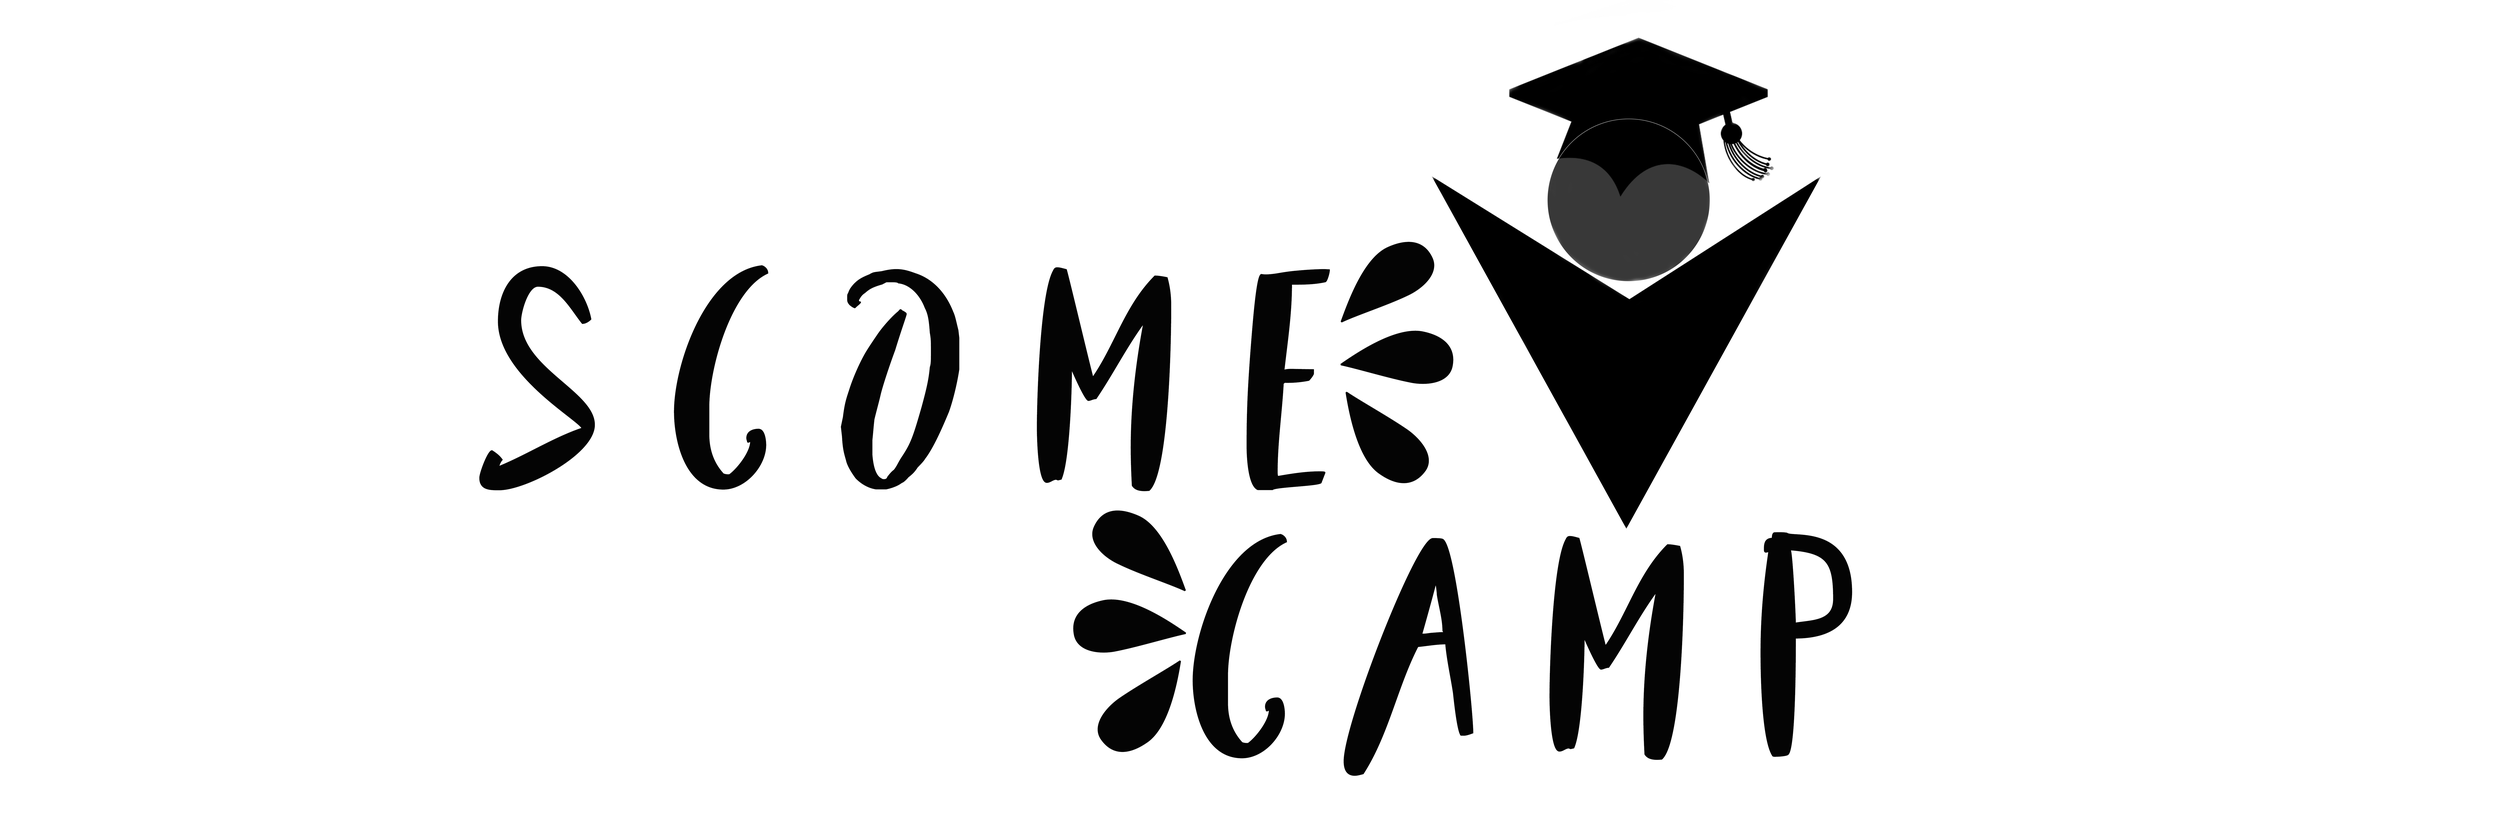 SCOME Camp 2.png